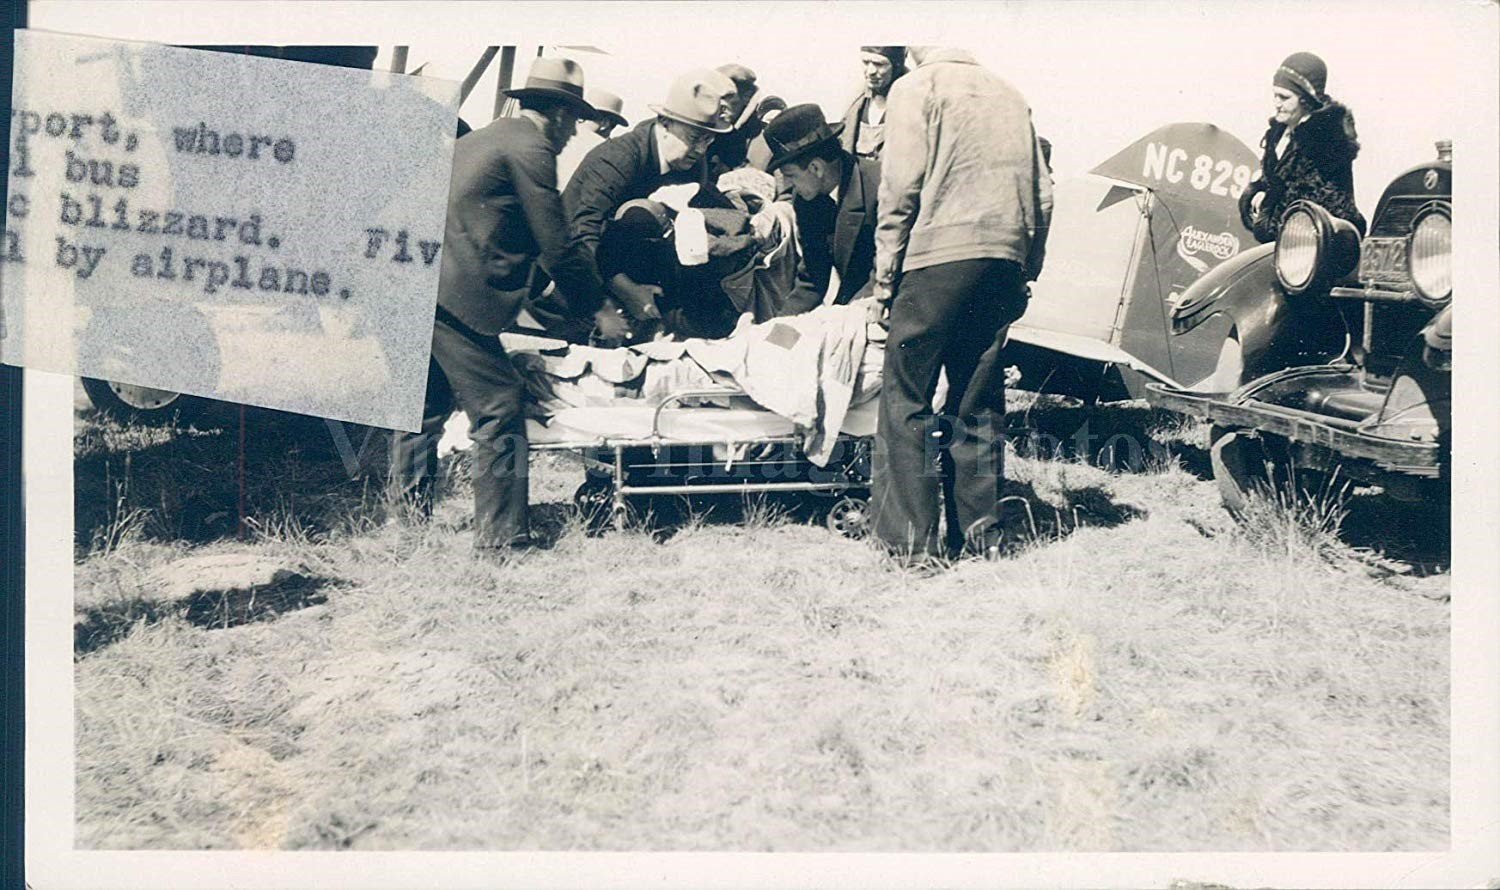 Press photo of children being flown to the hospital by local pilot